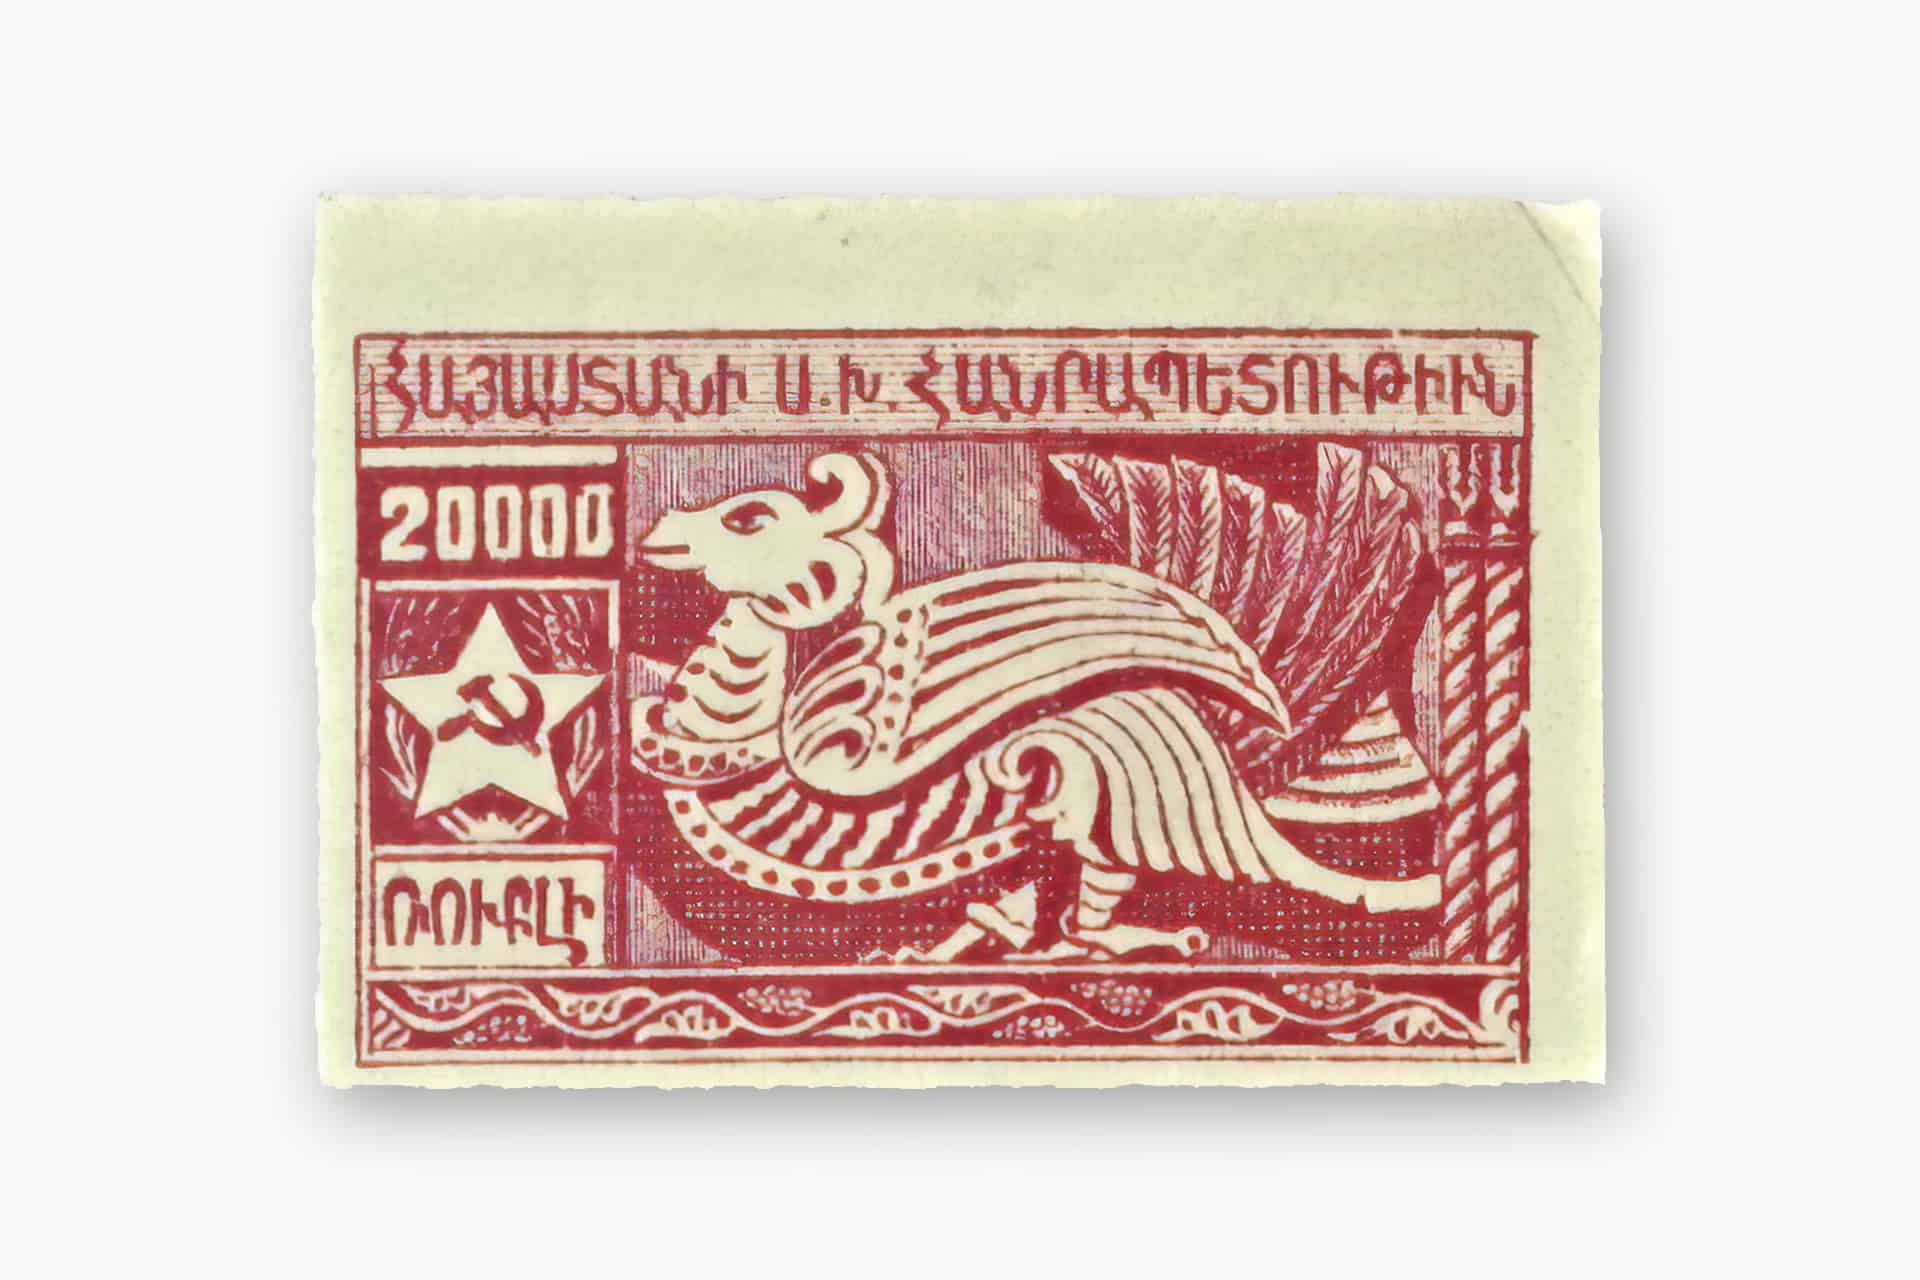 Stamp from the Transcaucasus region showing the Golden Ram